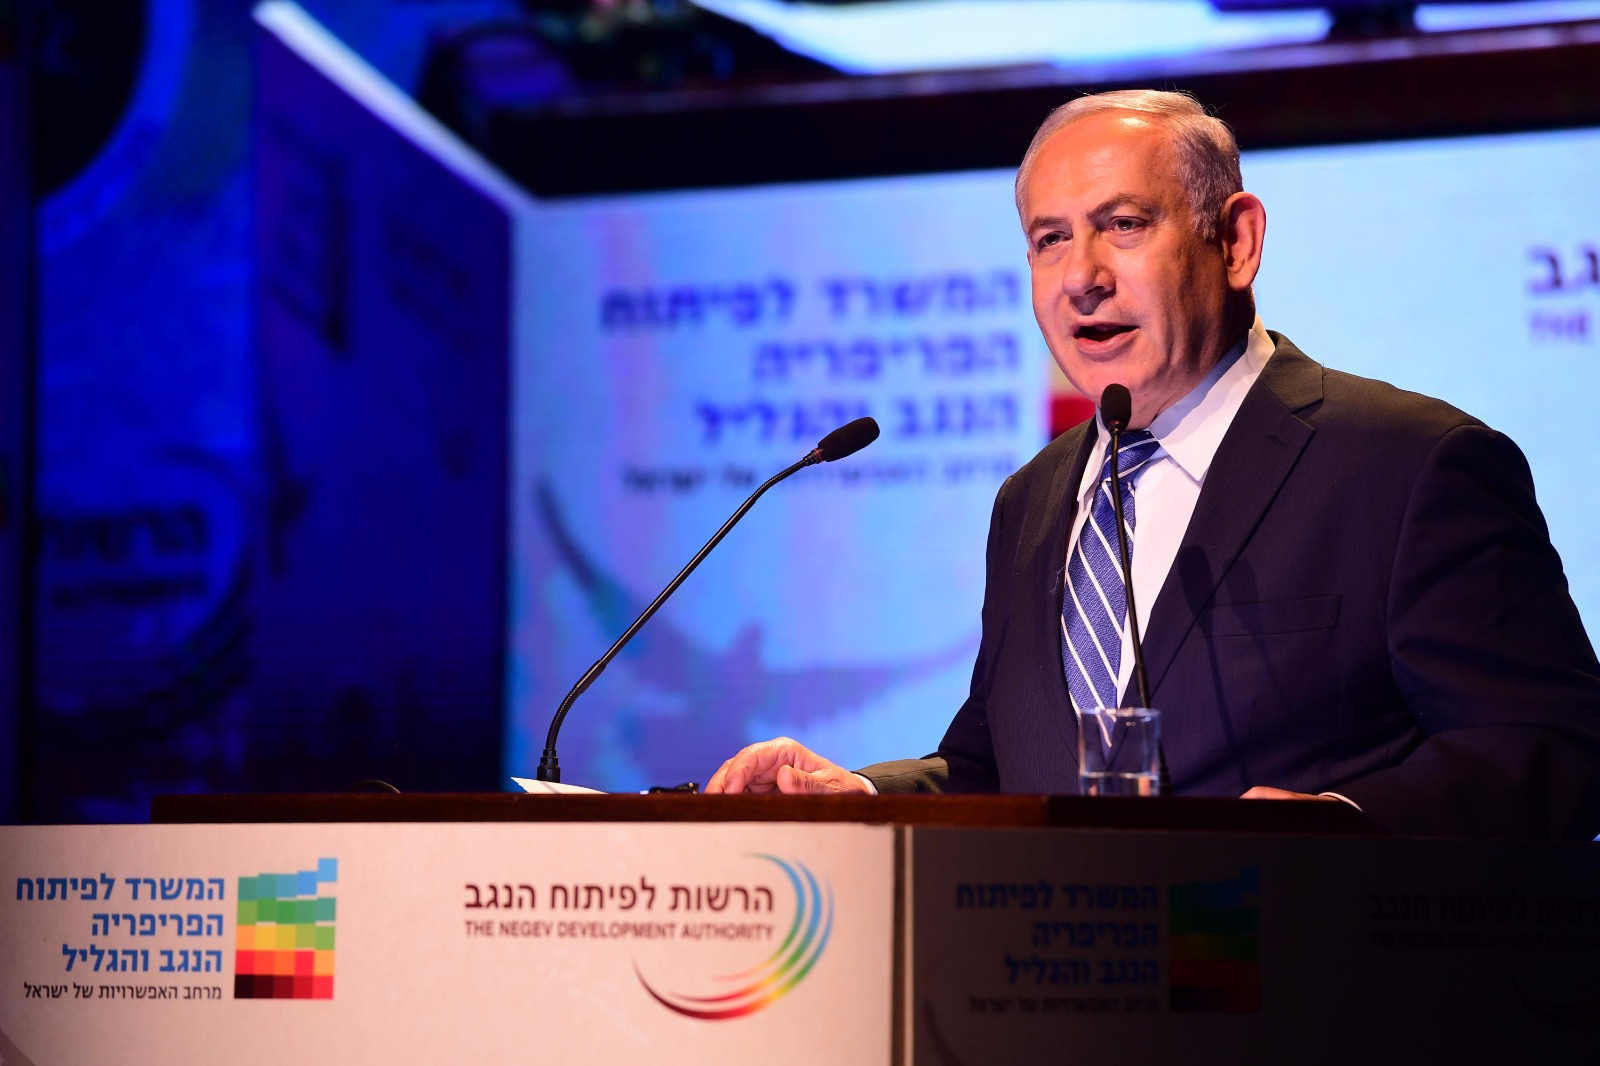 Netanyahu says policy to impede enemies from nuclear weapons